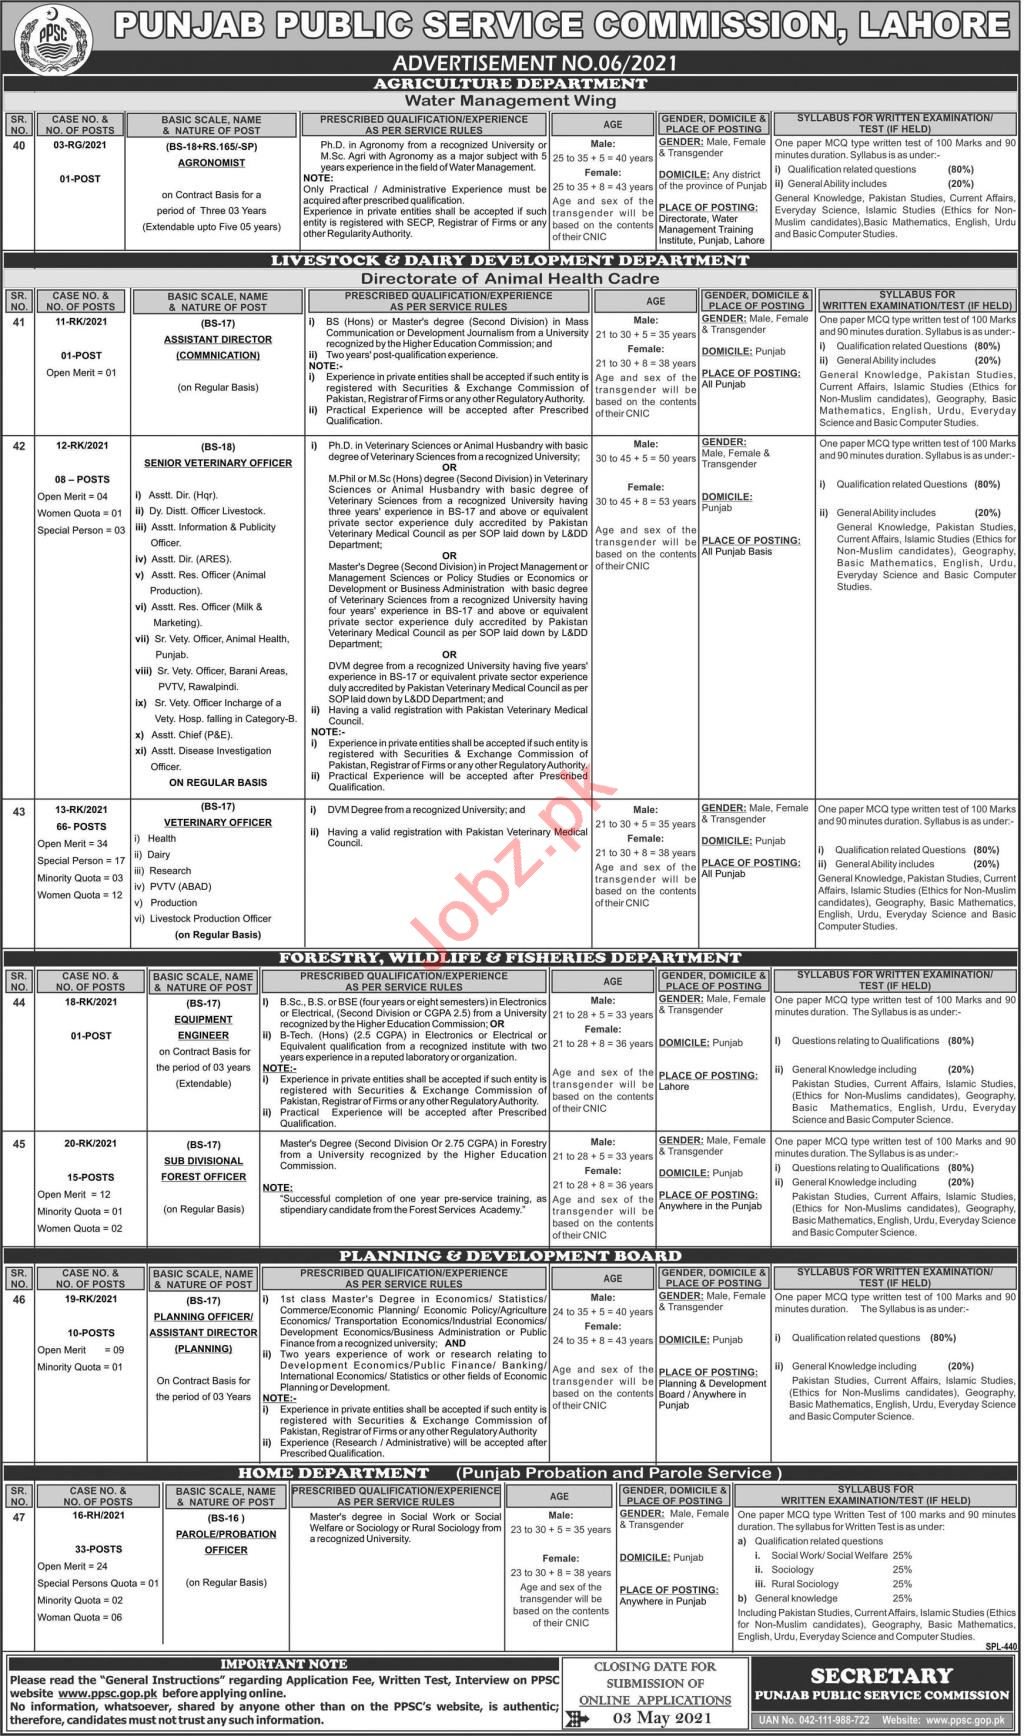 PPSC Jobs May 2021 for Veterinary Officer & Parole Officer